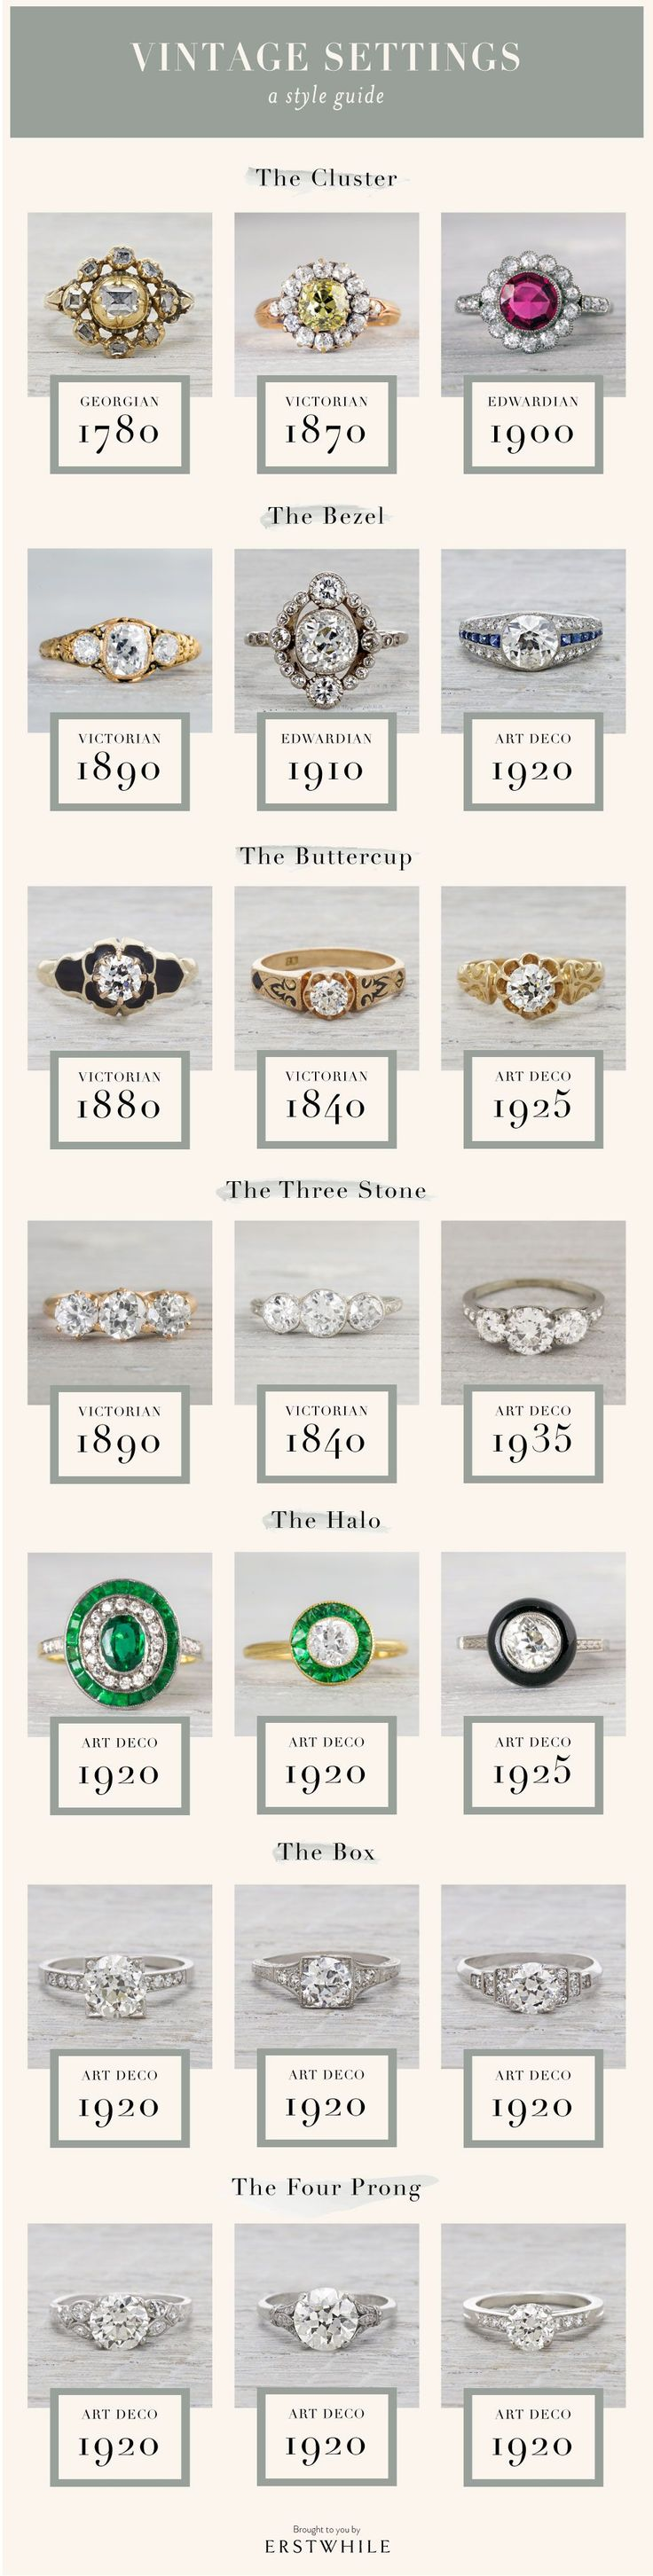 vintage engagement ring settings guide -love the middle 1920 art deco!